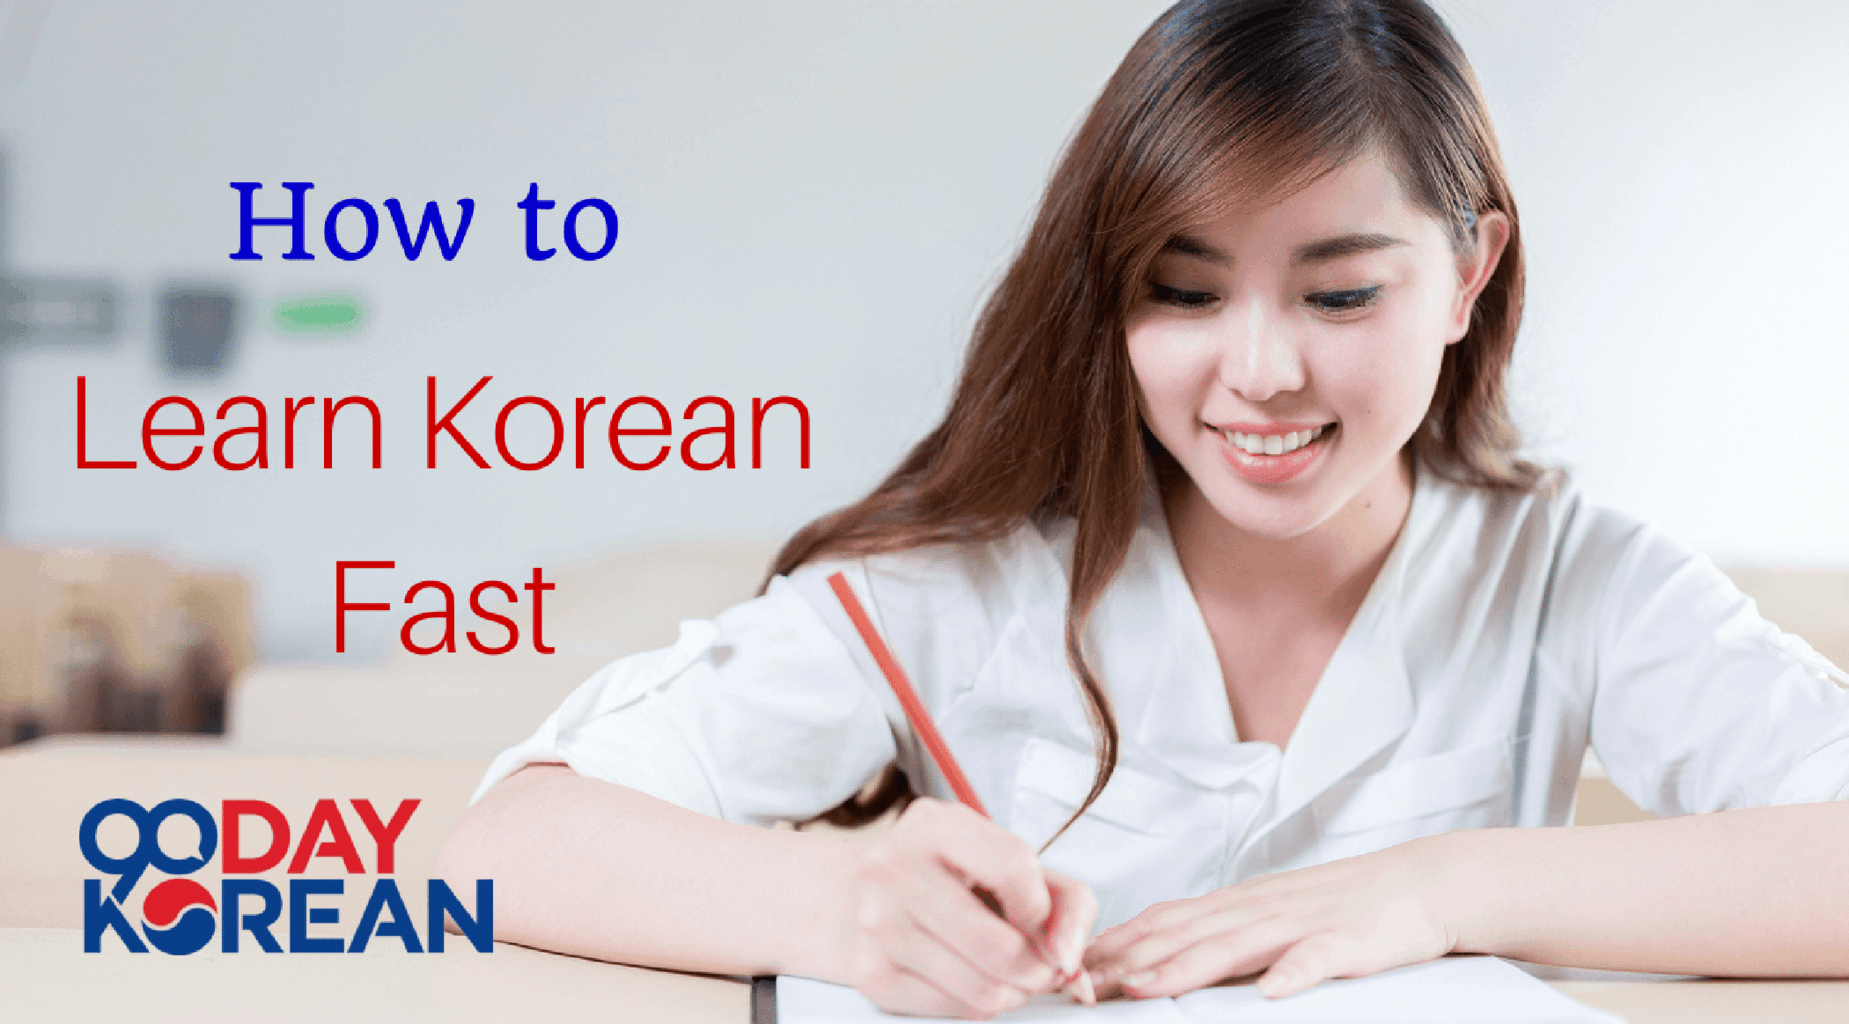 How to Learn Korean Fast